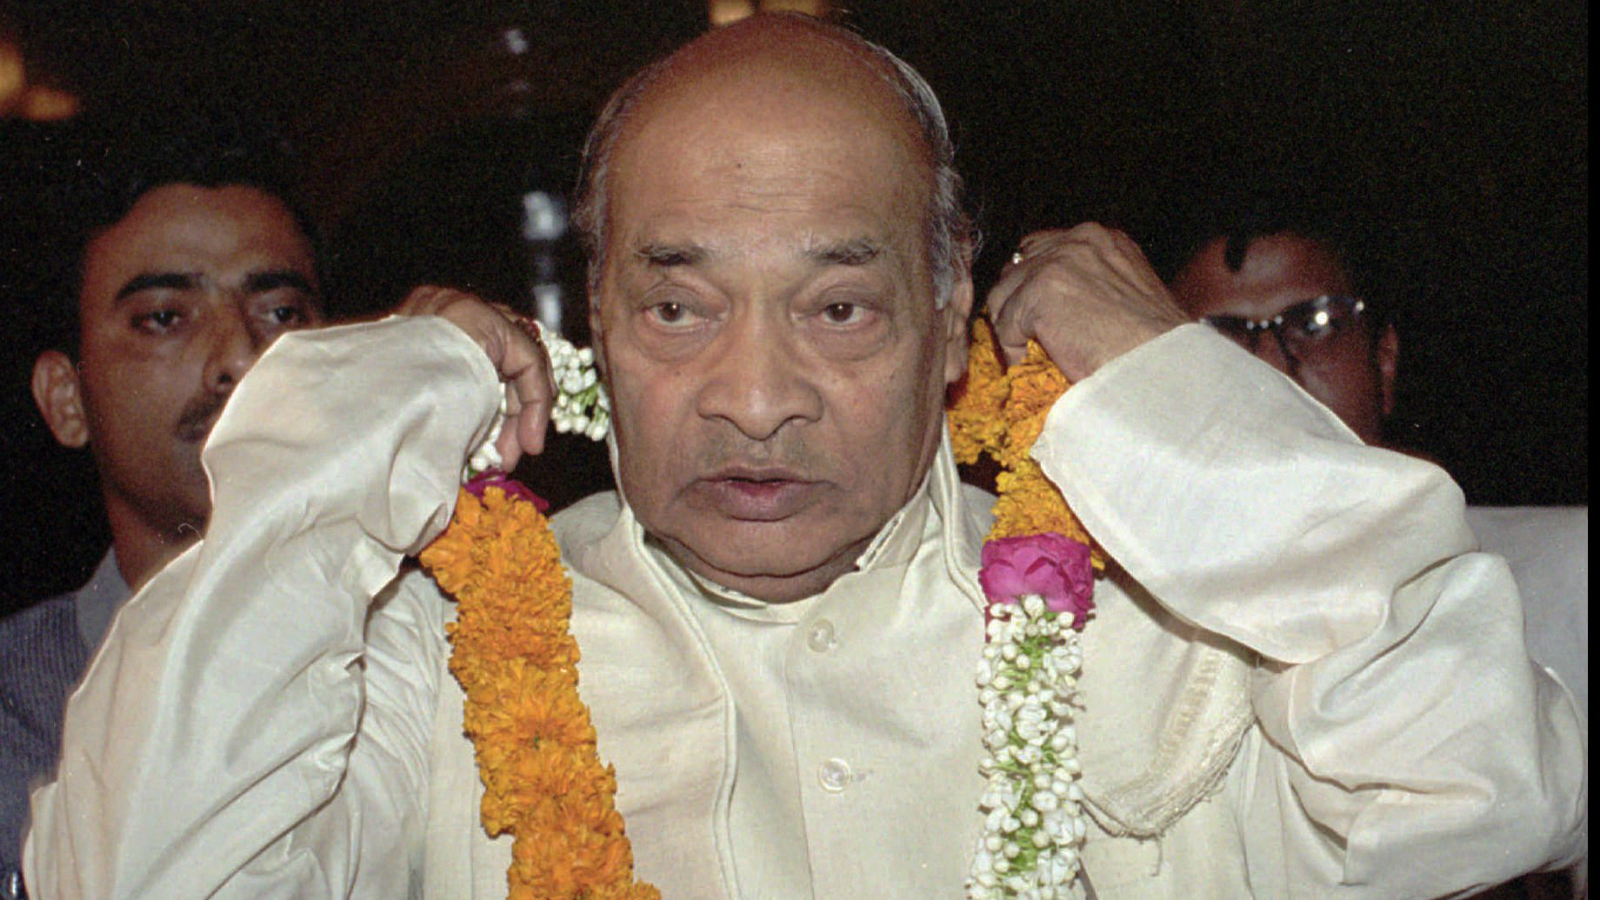 Indian Prime Minister P.V. Narasimha Rao removes a garland of flowers after arriving at parliament where the Congress Party re-elected him party president in New Delhi Sunday, May 12, 1996. Rao resigned as prime minister Friday following his Congress Party's election defeat but will continue as caretaker prime minister until a new government is formed.